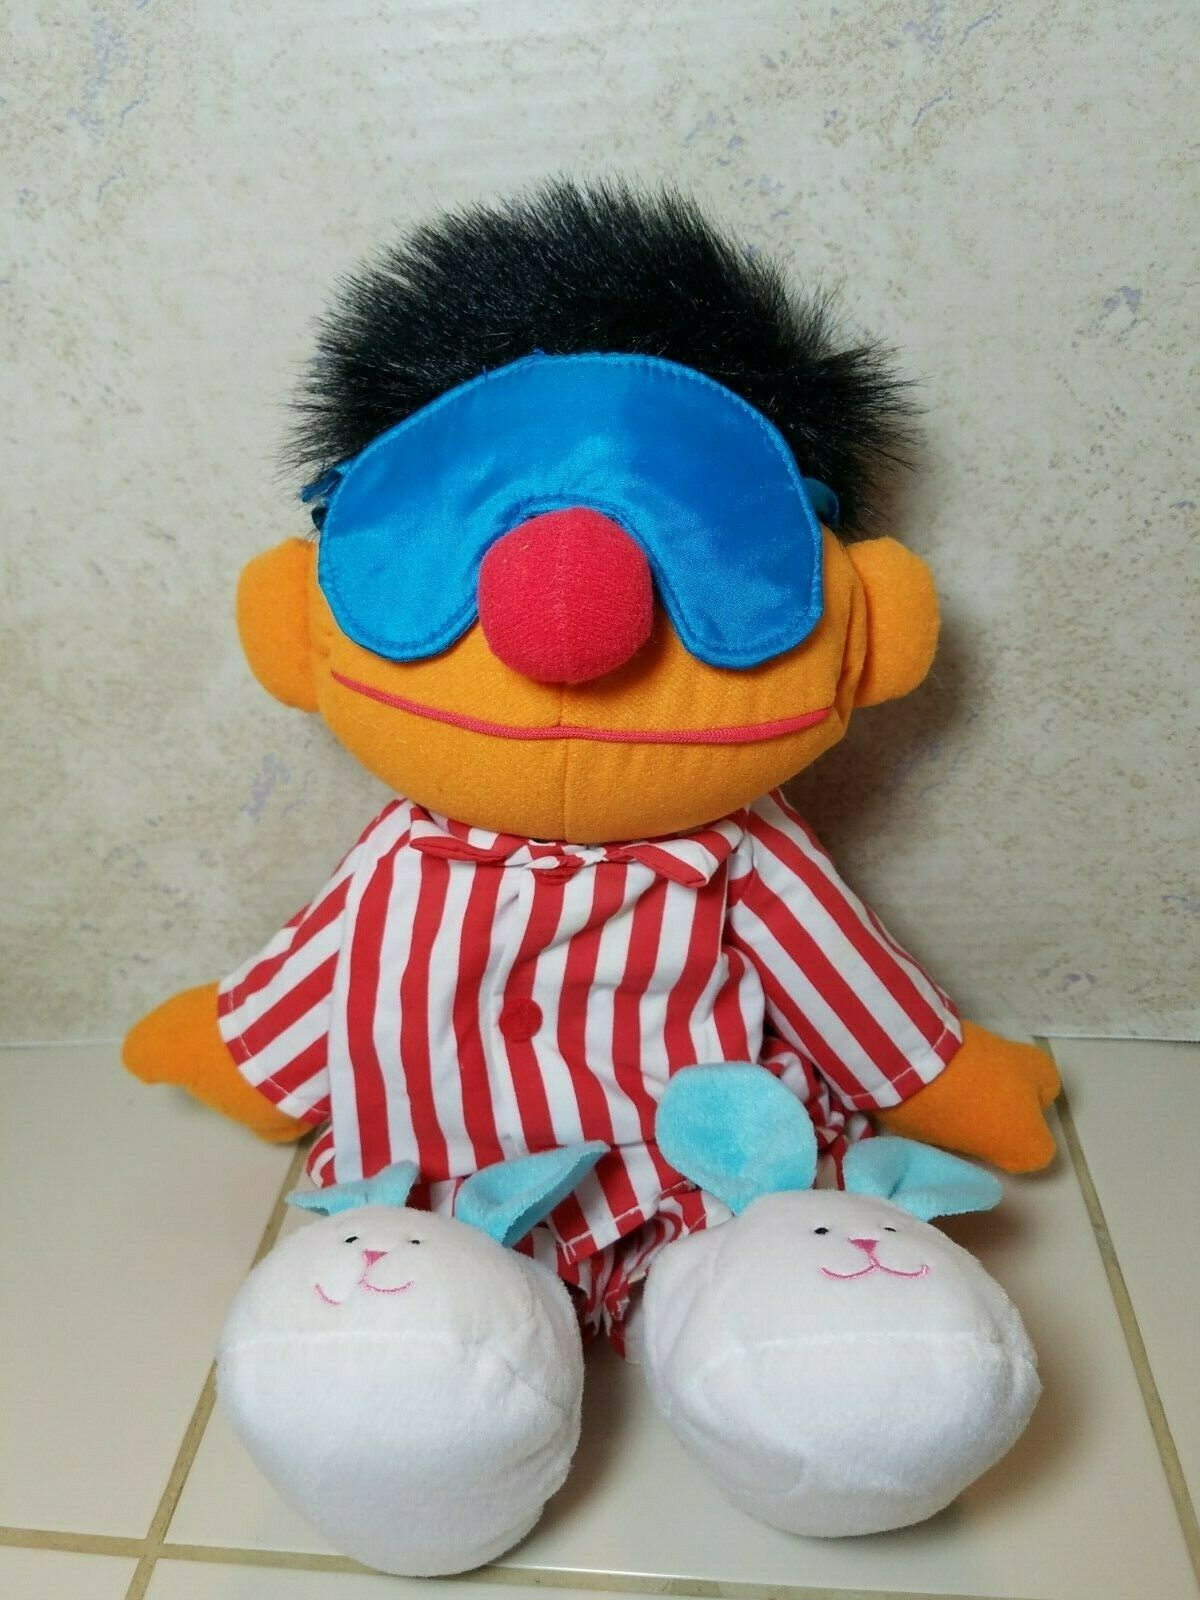 "TYCO Sesame Street Sleep And Snore Ernie 1996 Plush Doll 18"" Jim Henson Muppet image 11"